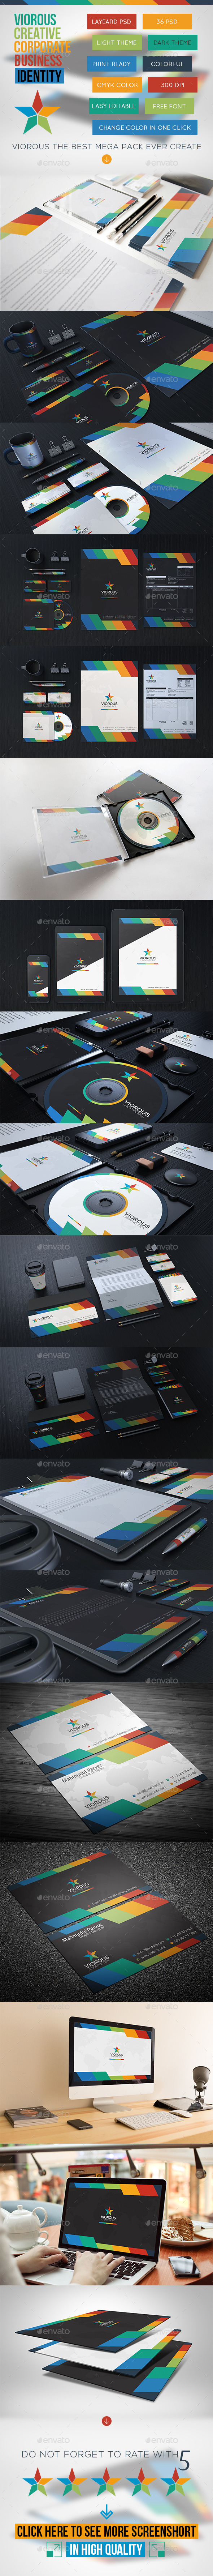 Viorous Corporate Stationary Identity - Stationery Print Templates